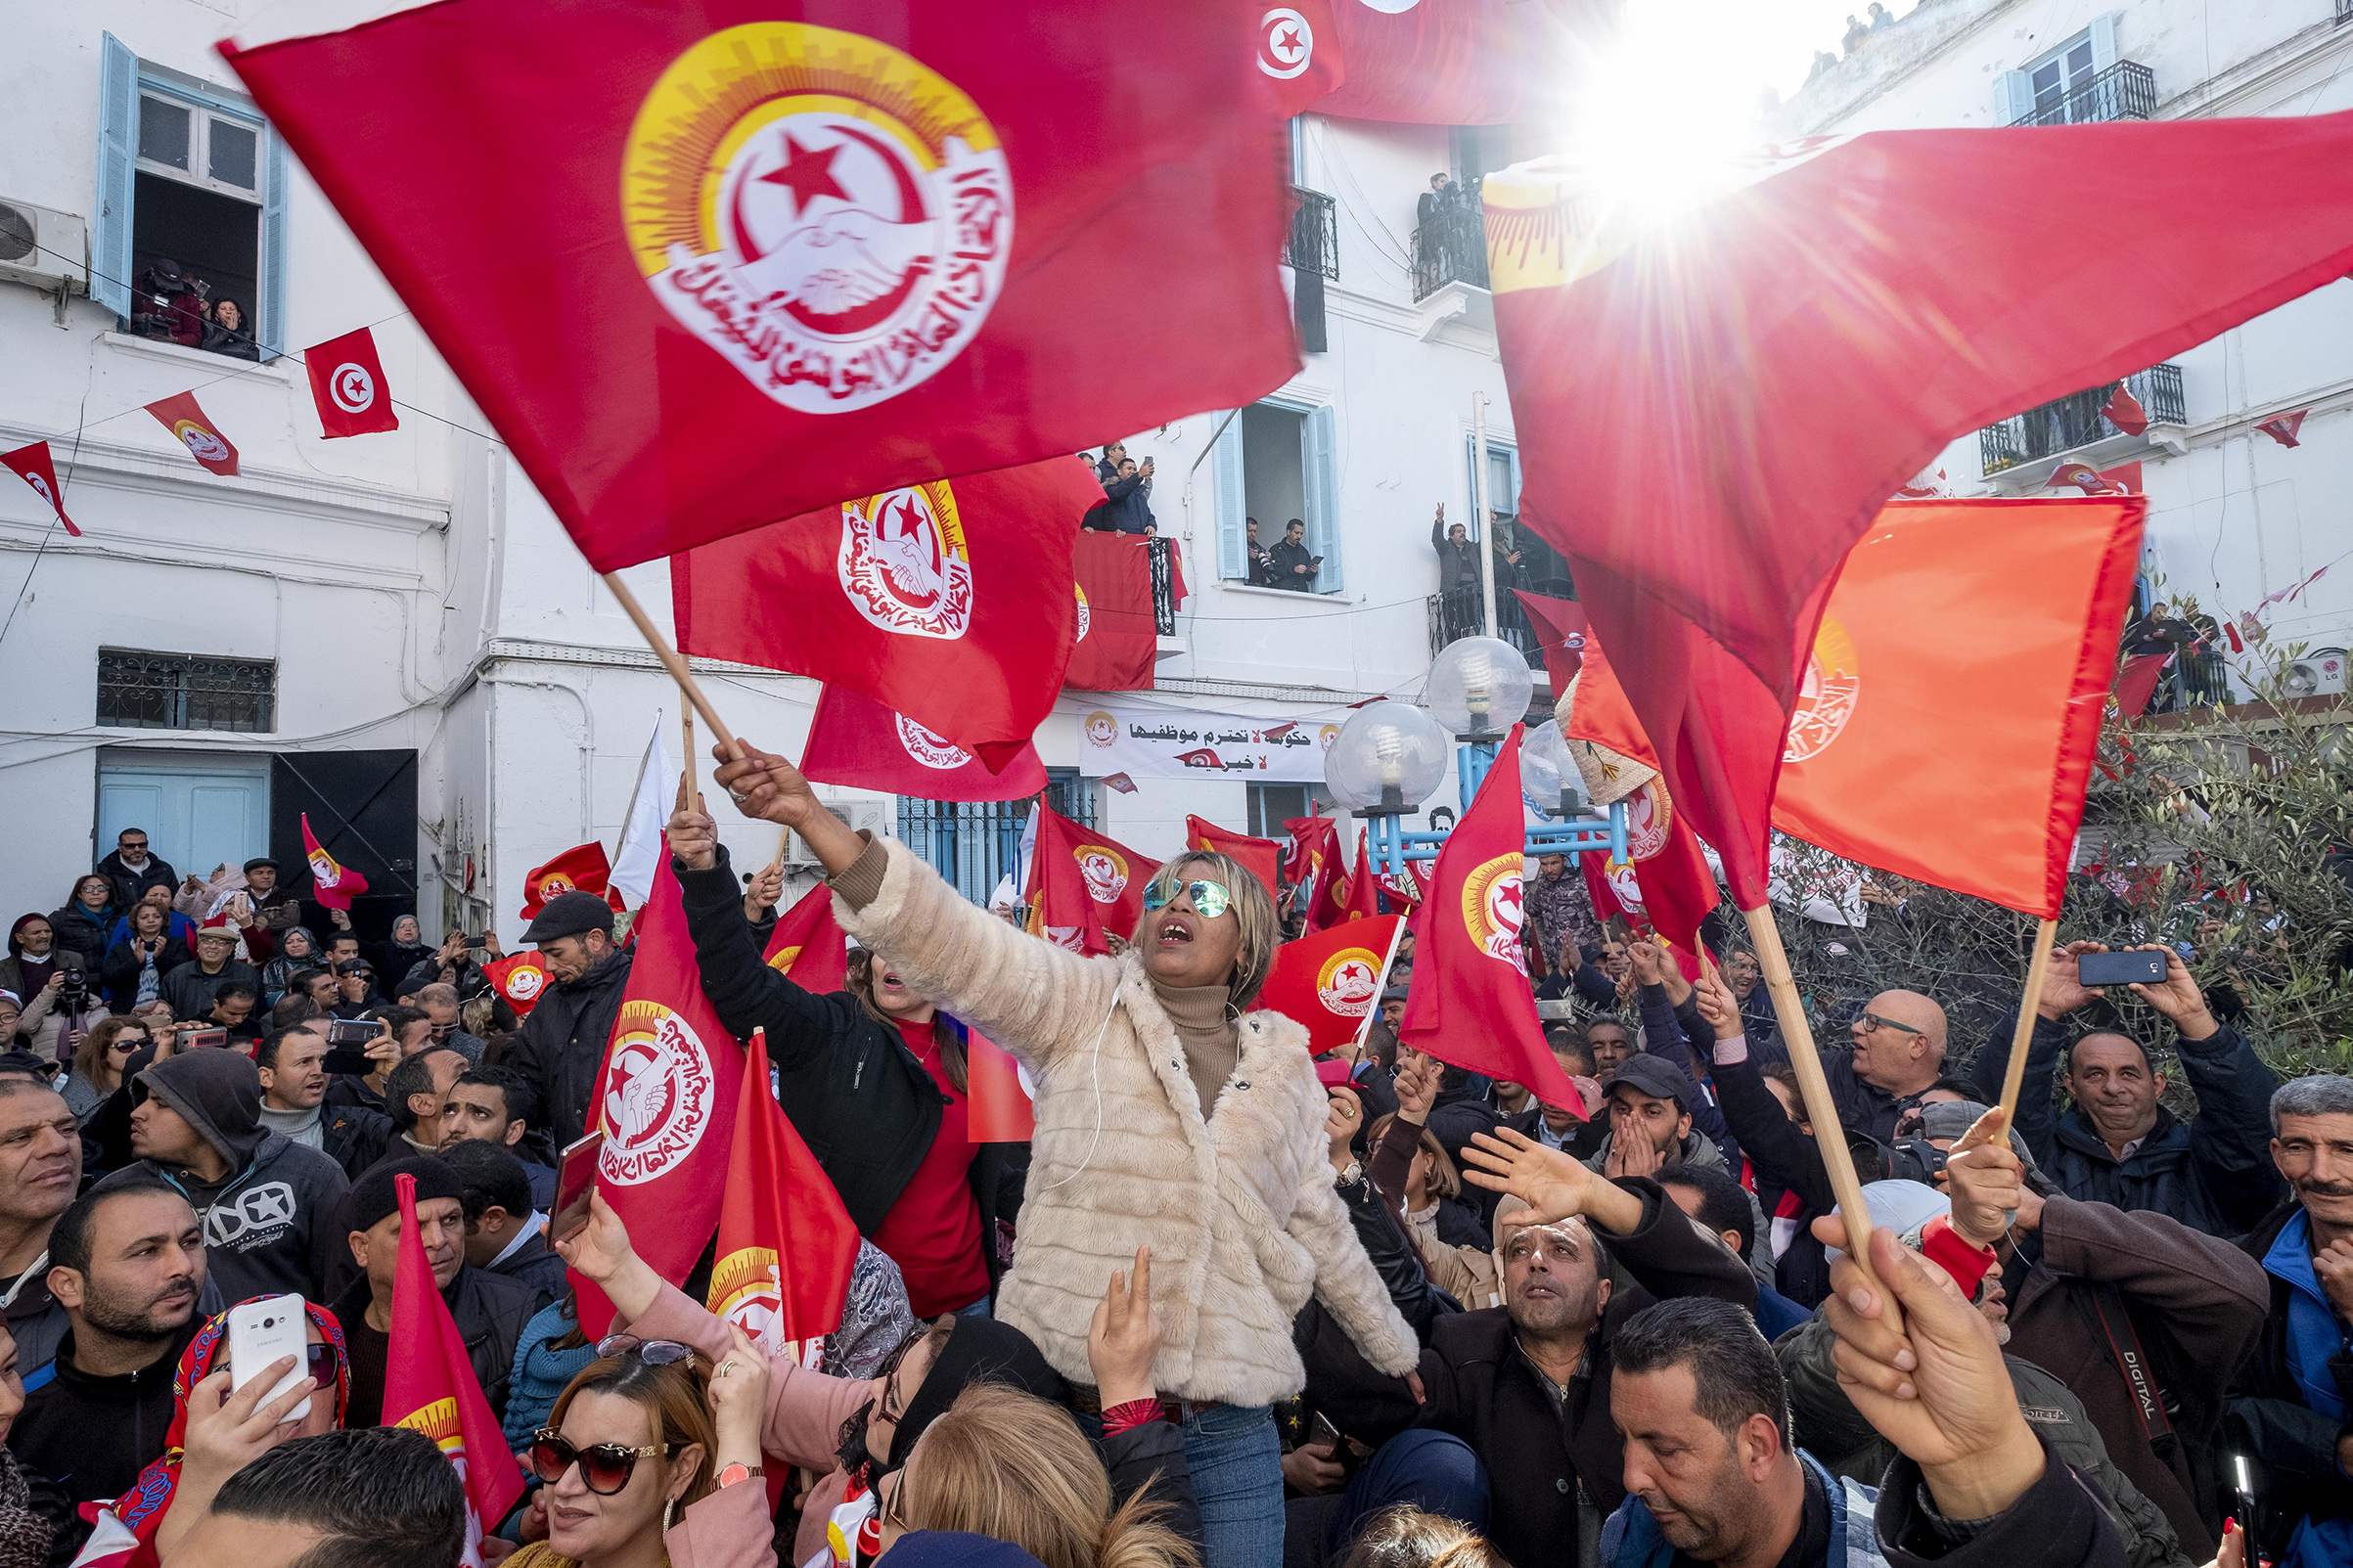 Civil Servants stage a protest within the public officials' strike, demanding the rise of their wage, after the strike call by Tunisian General Labour Union in Tunis, Tunisia on January 17, 2019.